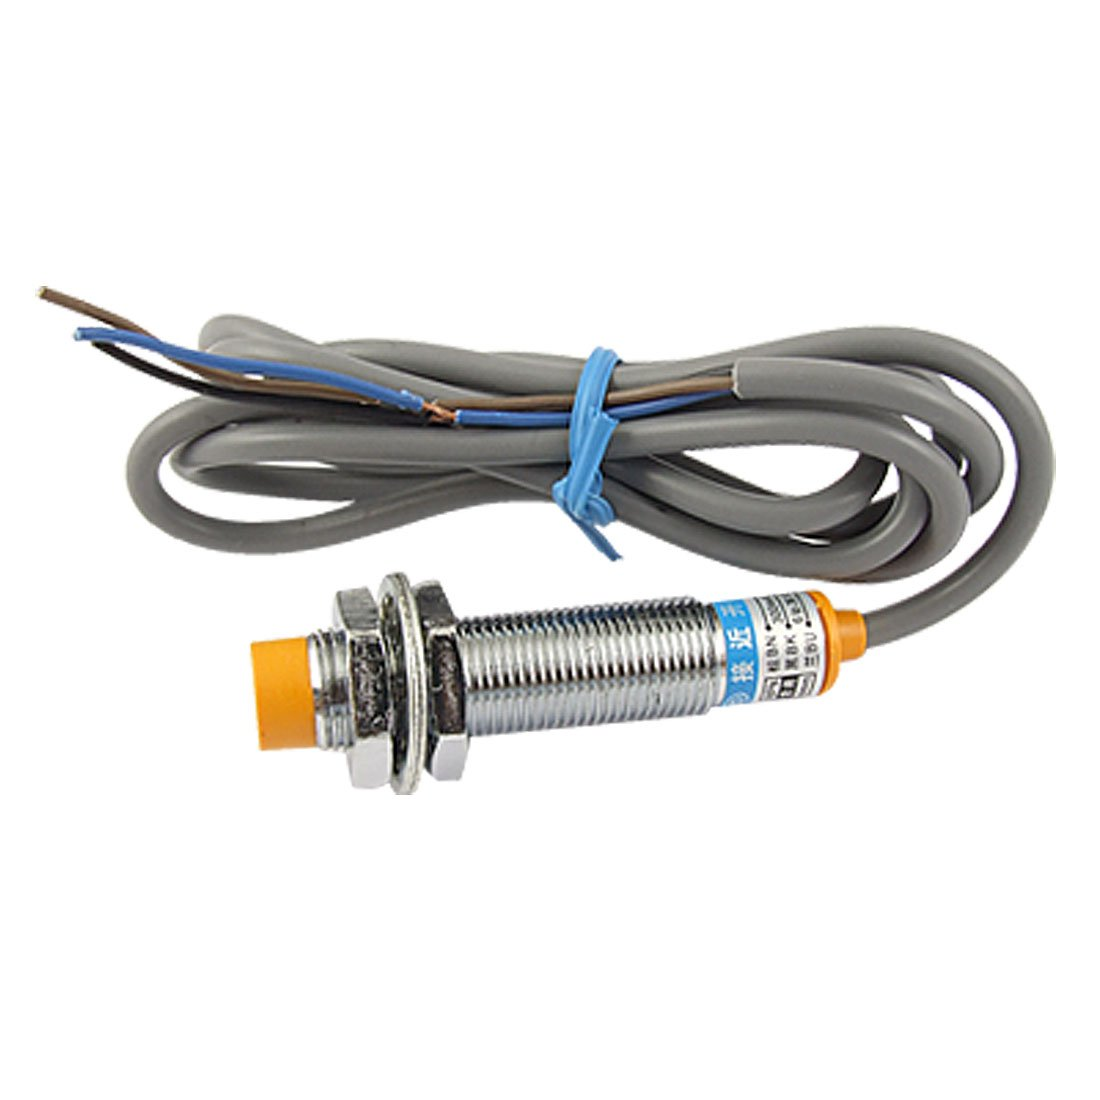 Uxcell LJ12A3-4-Z/Ax 4 mm Cylindrical Inductive Proximity Sensor ...